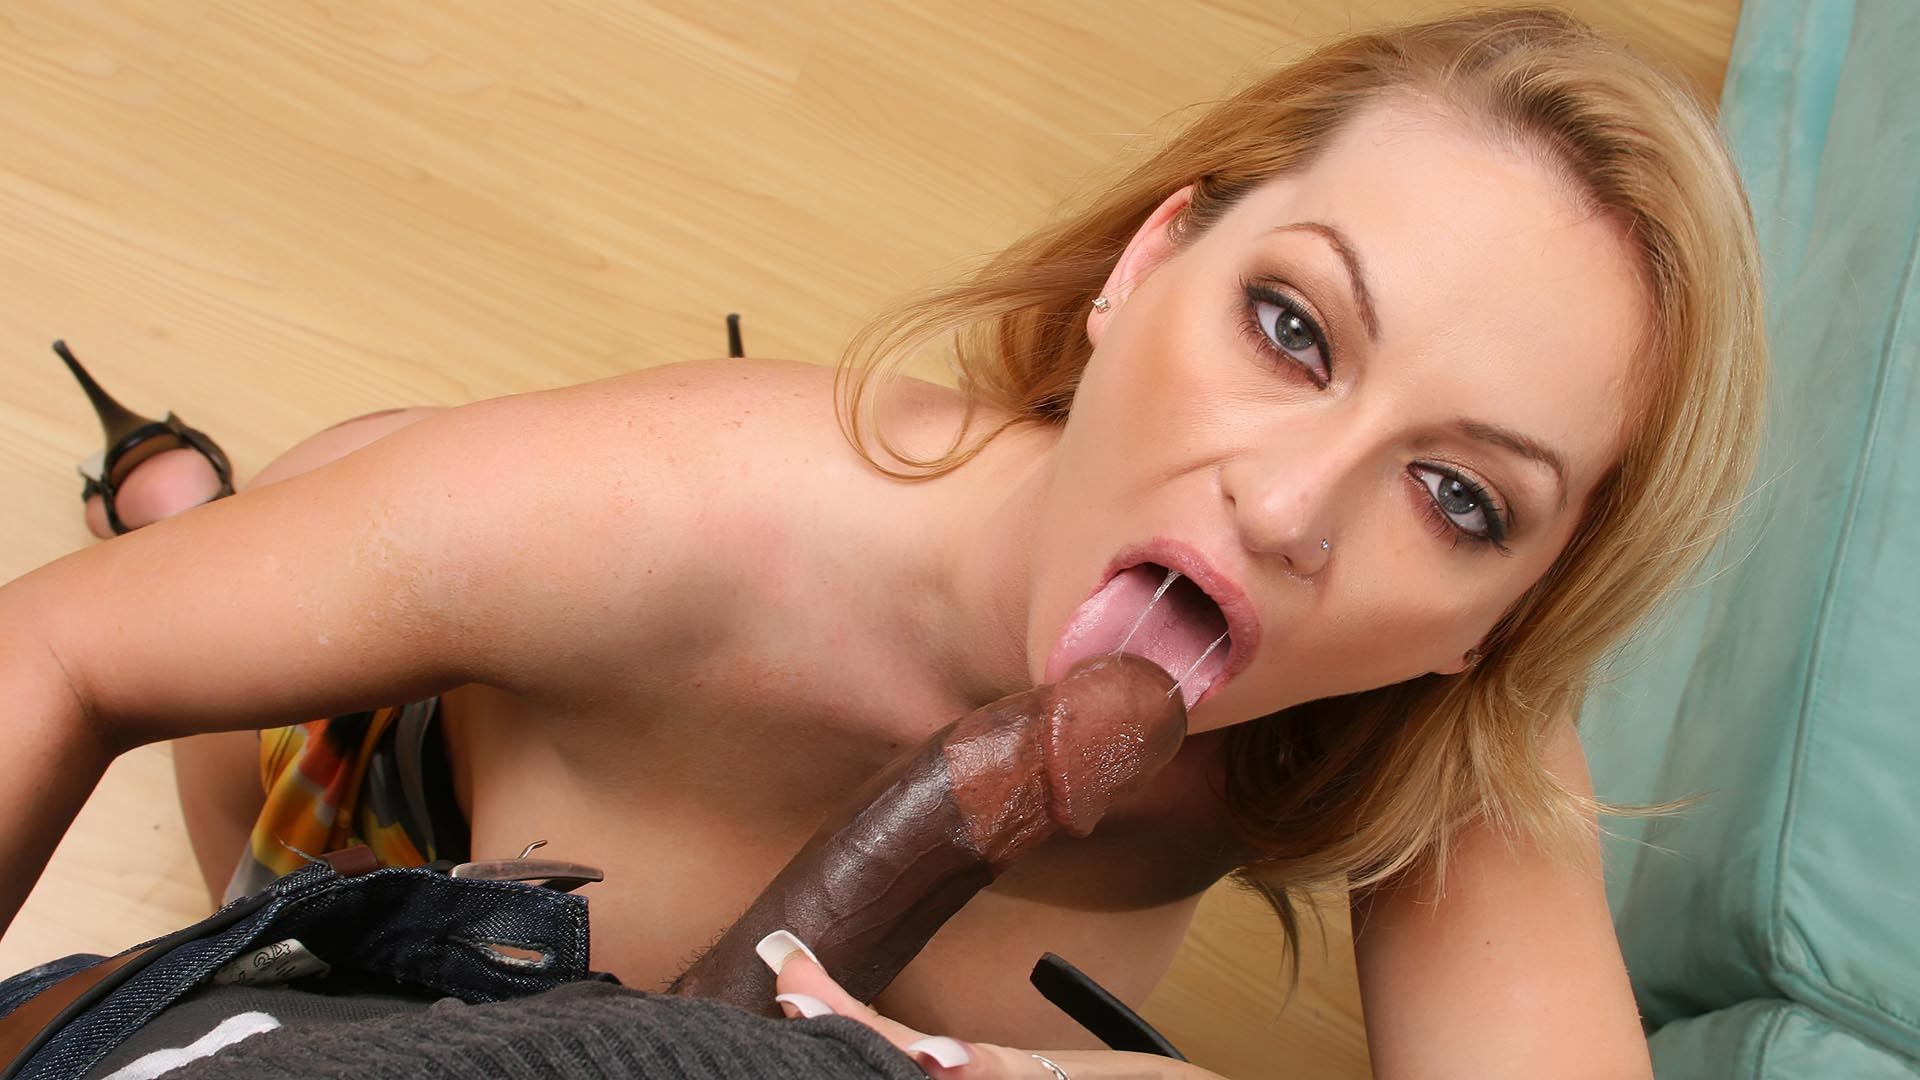 First She Is Surprised By His Six Pack And Then With His Big Cock